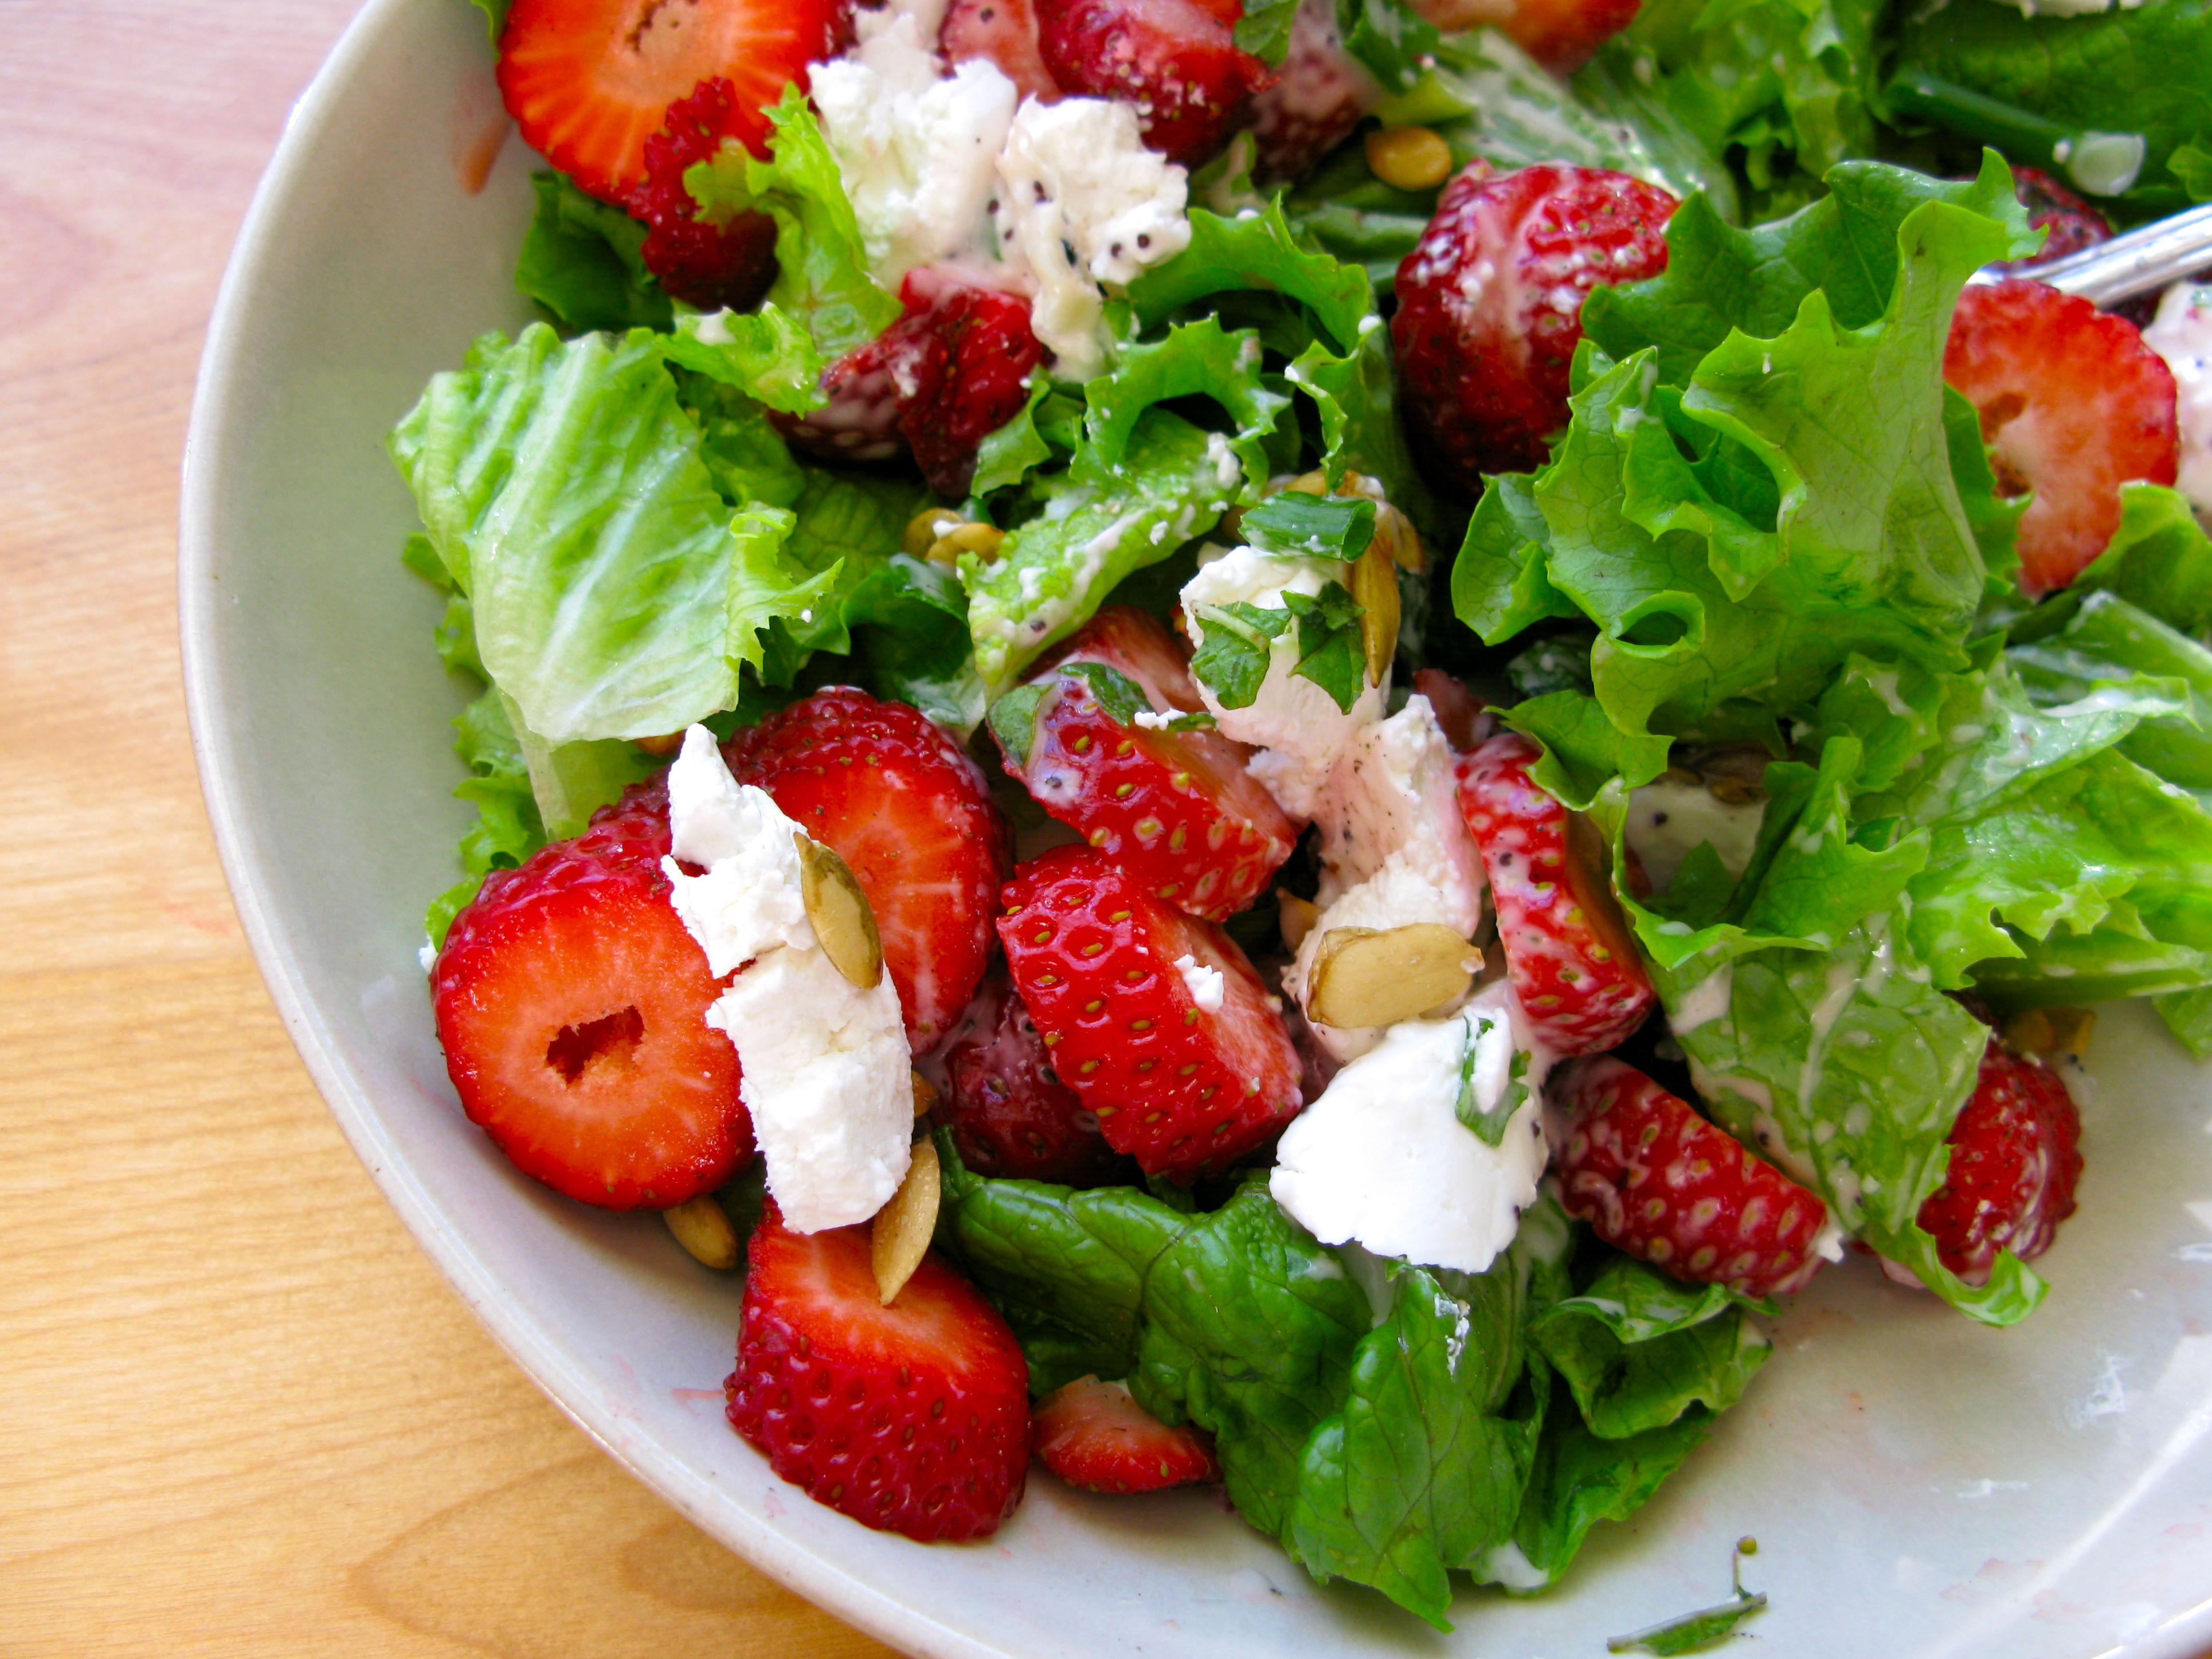 lettuce salad with strawberries - HD3859×2894